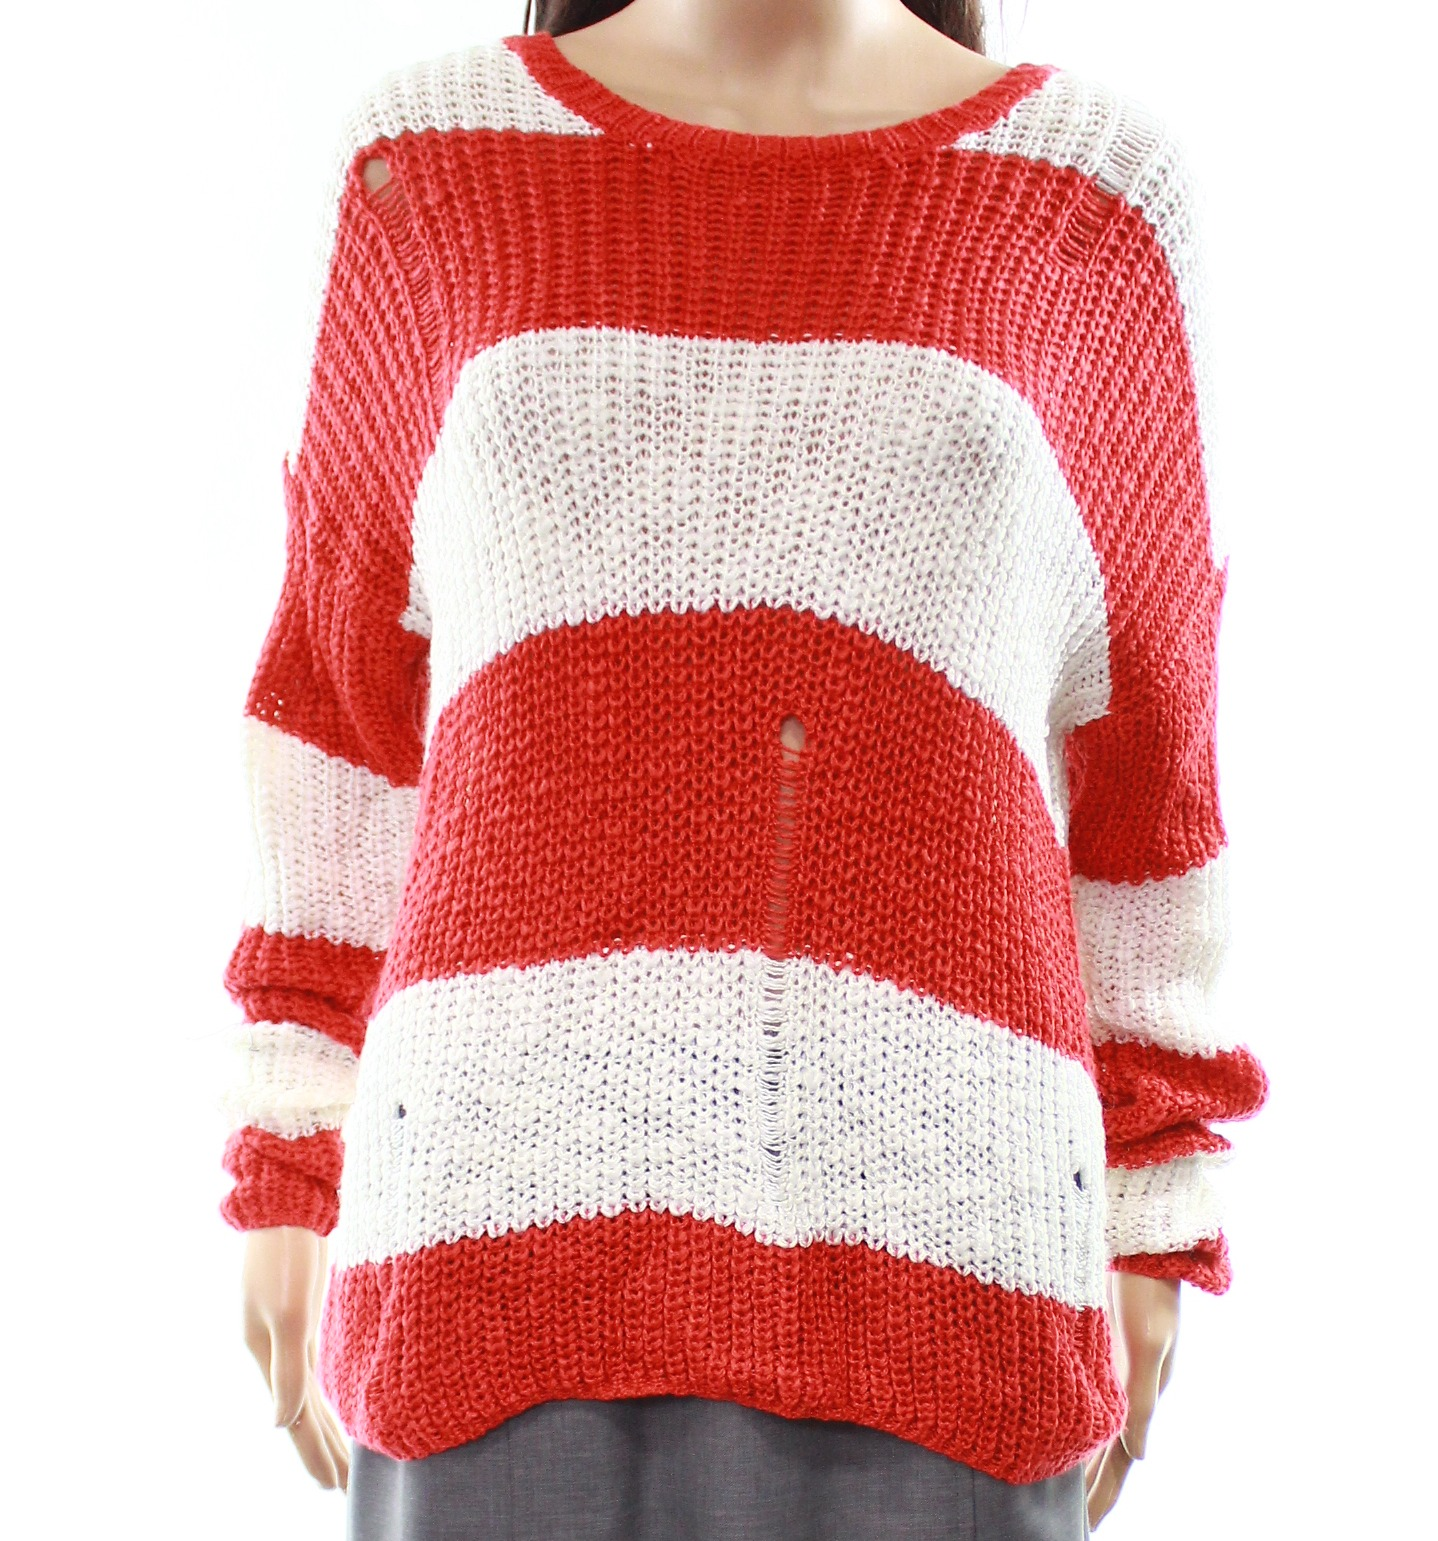 7462c8752 Cotton Emporium NEW Red Women s Size Large L Striped Knitted Sweater  60   170